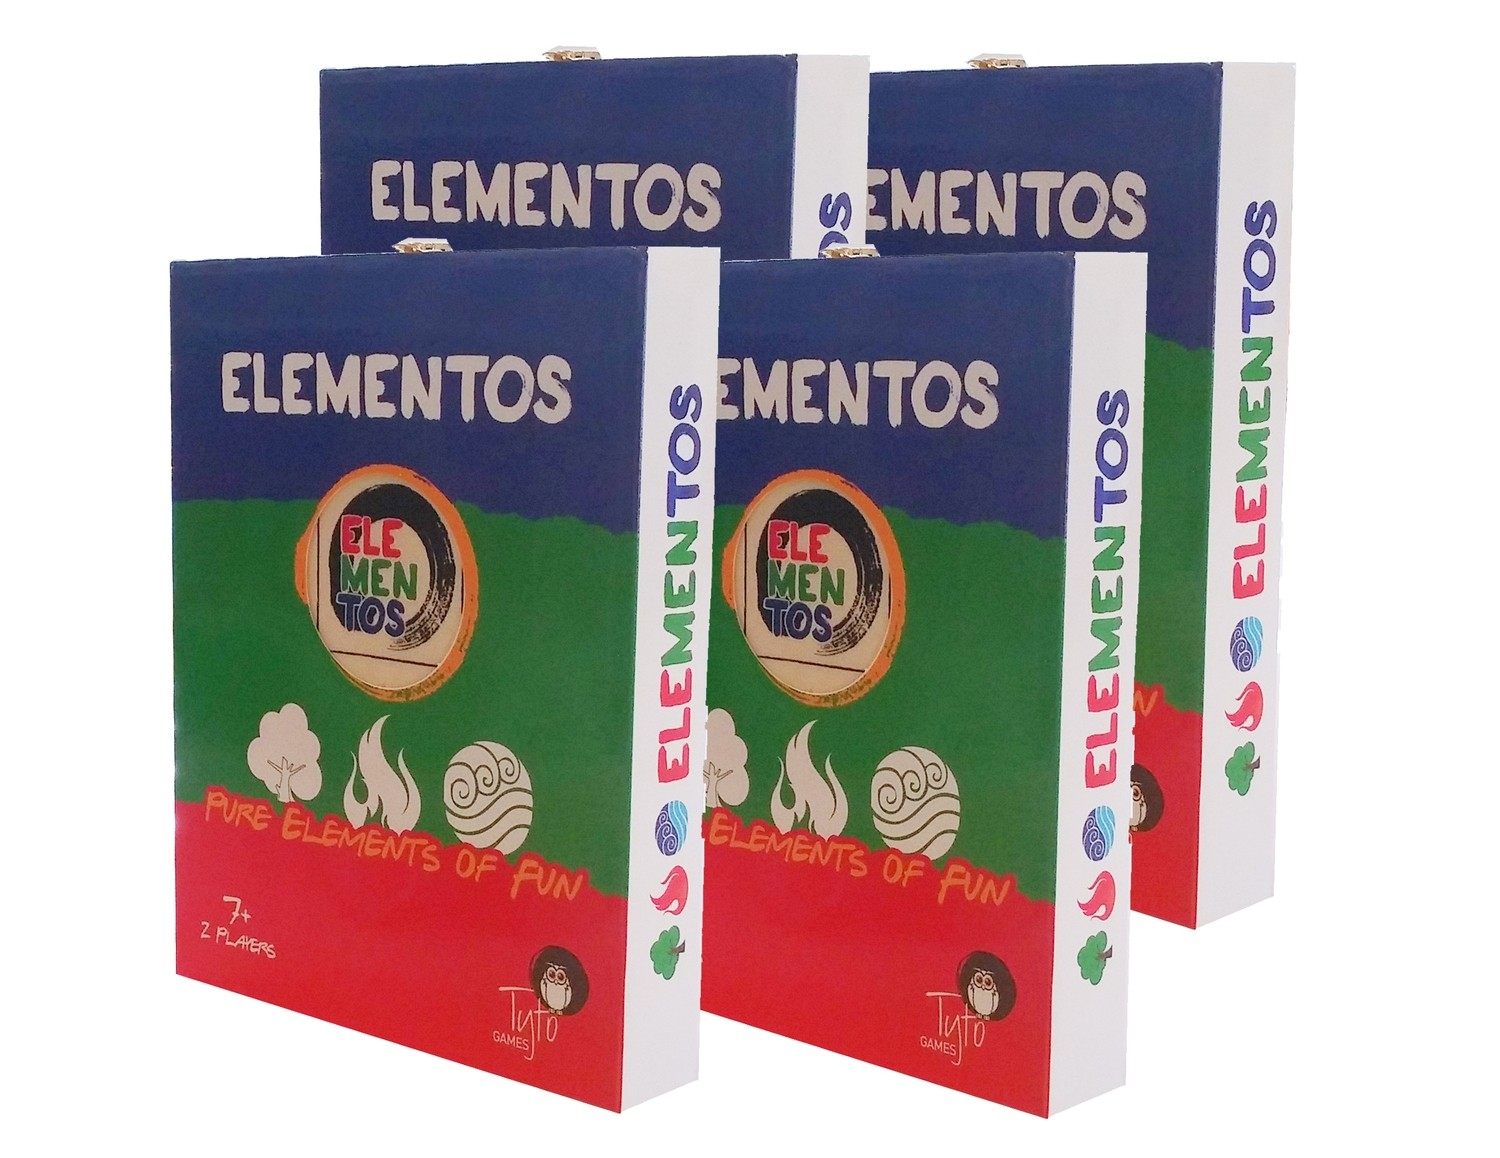 ELEMENTOS 4 pack for a special price